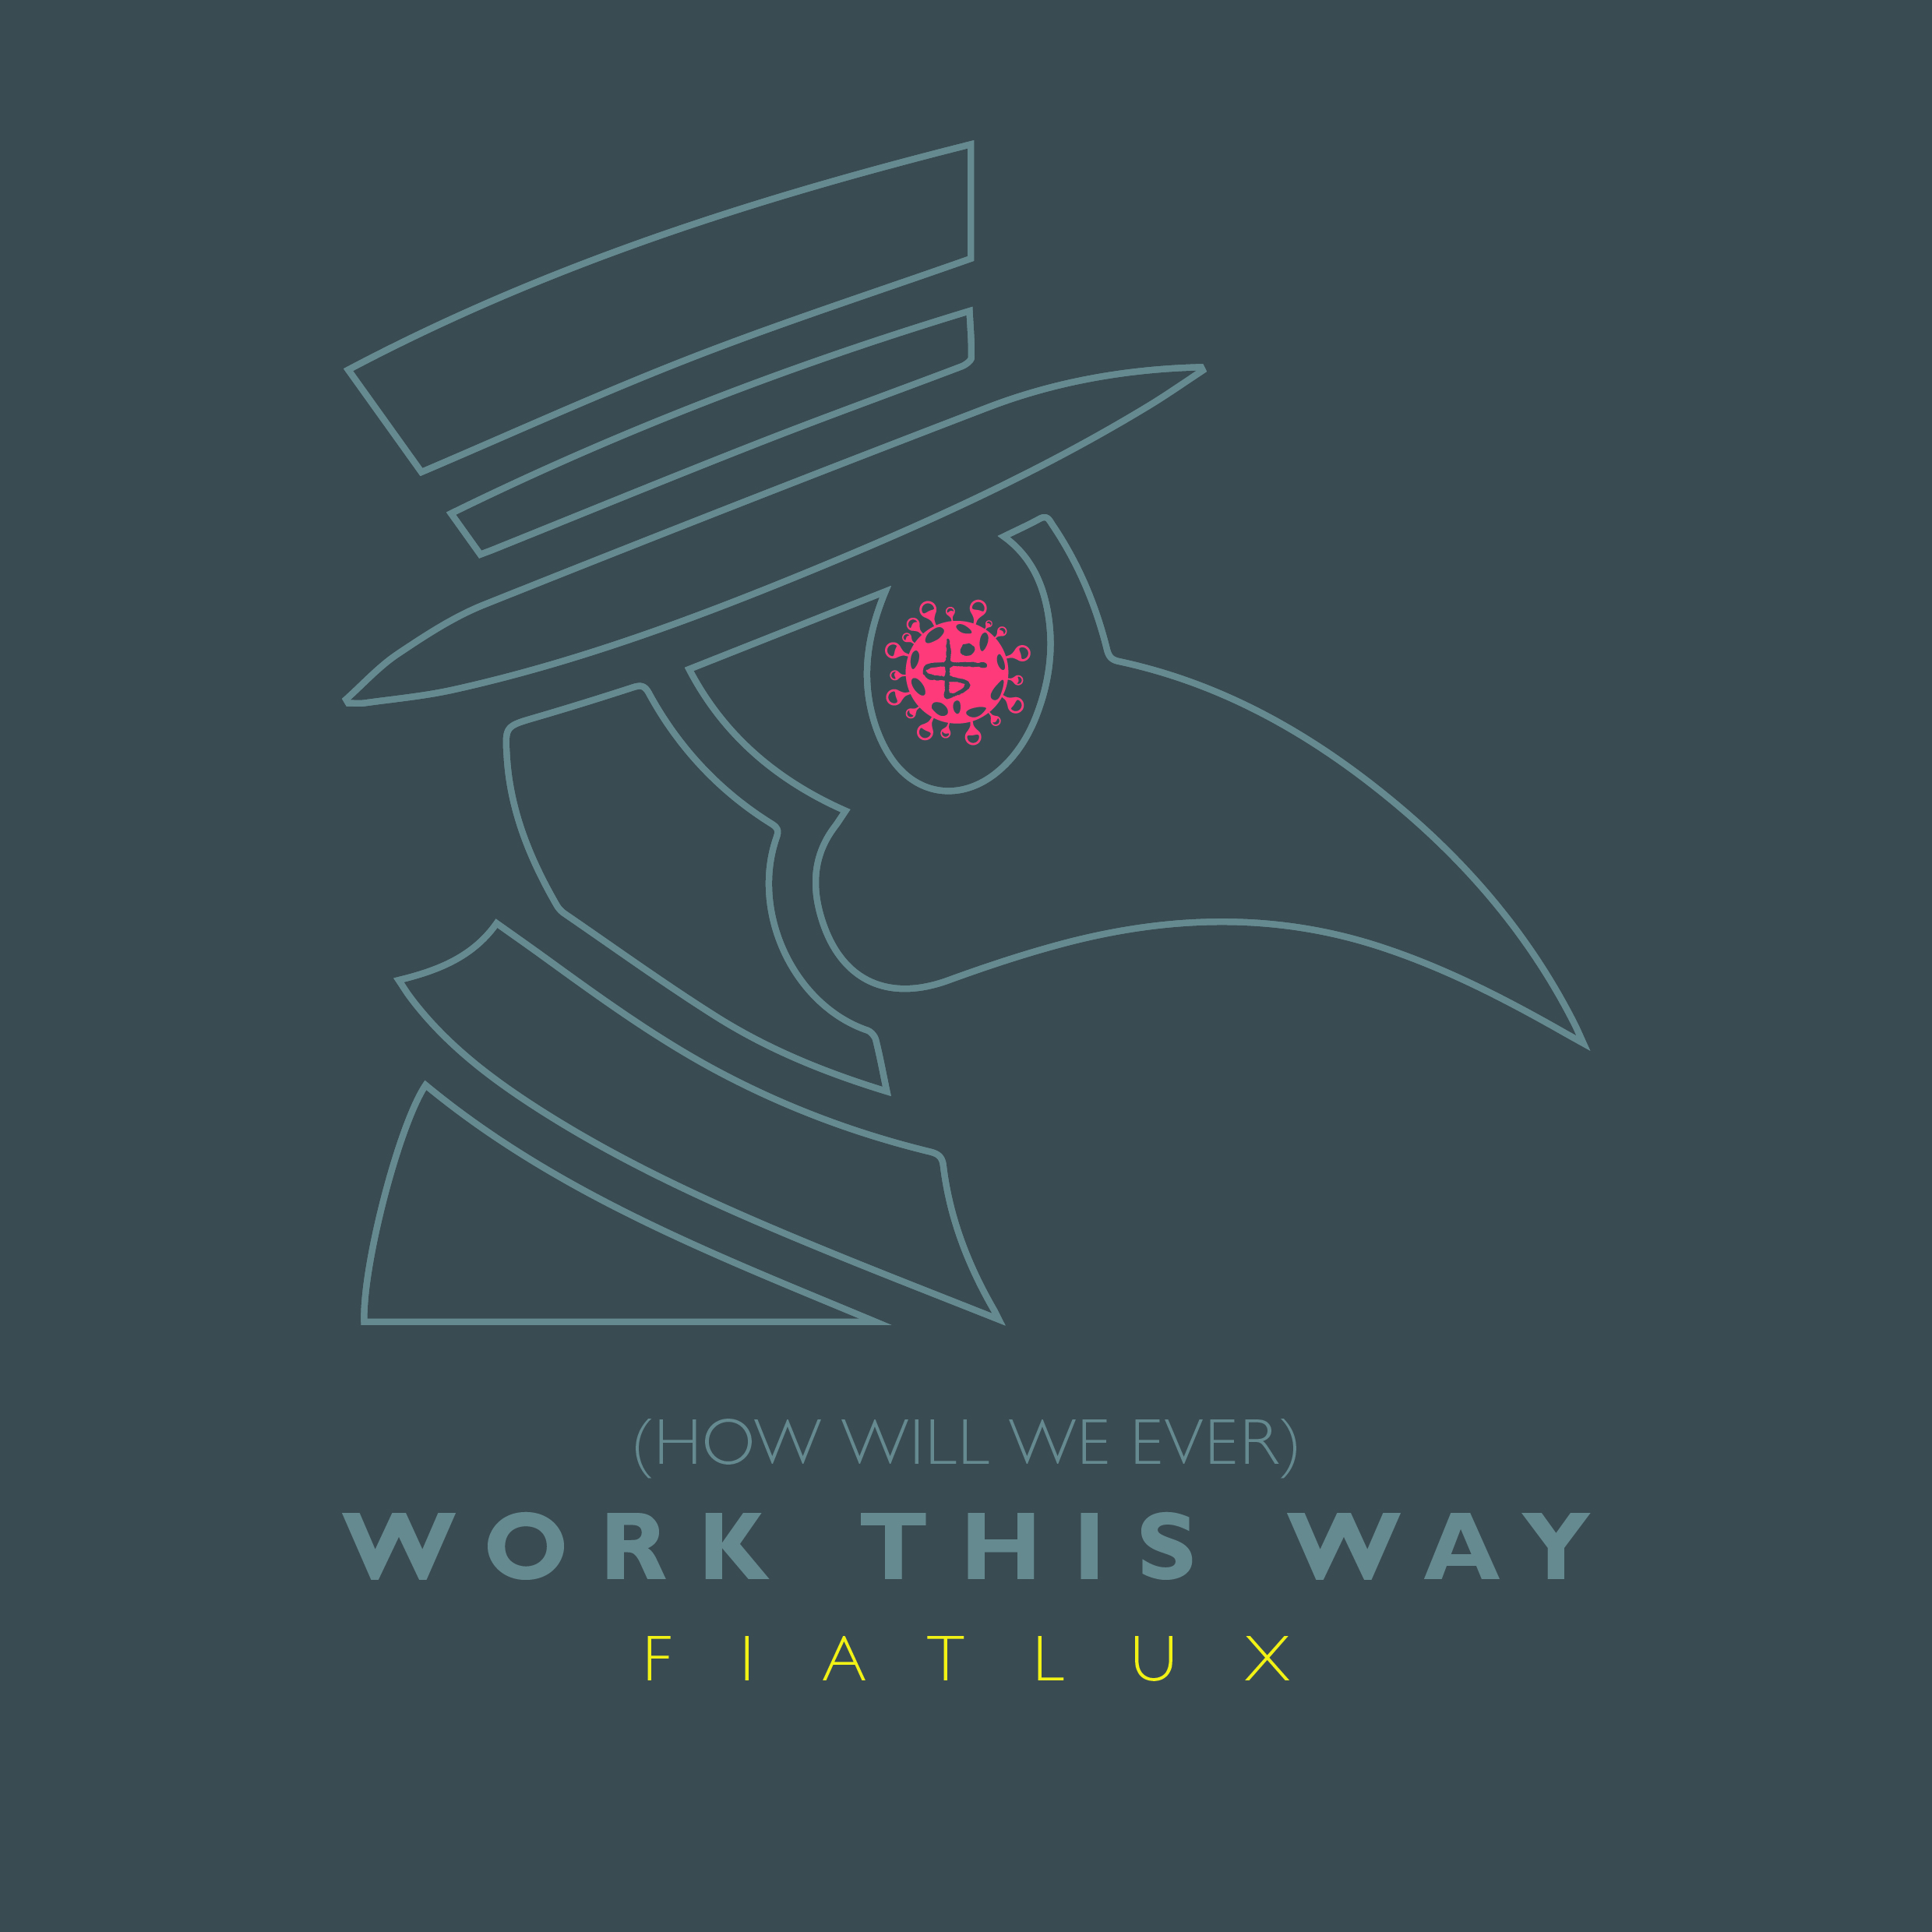 Fiat Lux - (How Will We Ever) Work This Way